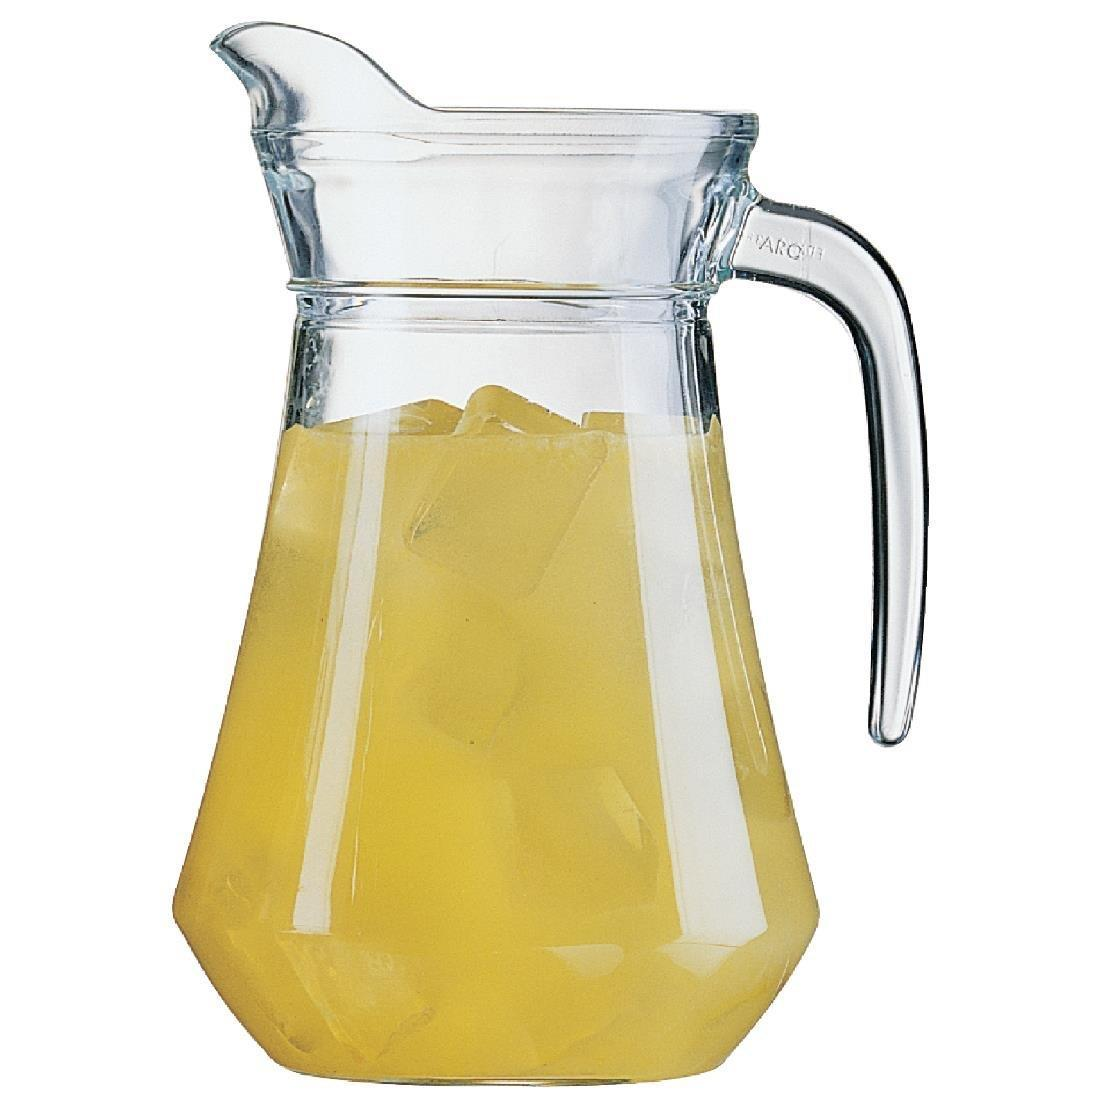 Arc Jug - 1Ltr 35.2oz (Box 6) - CJ040